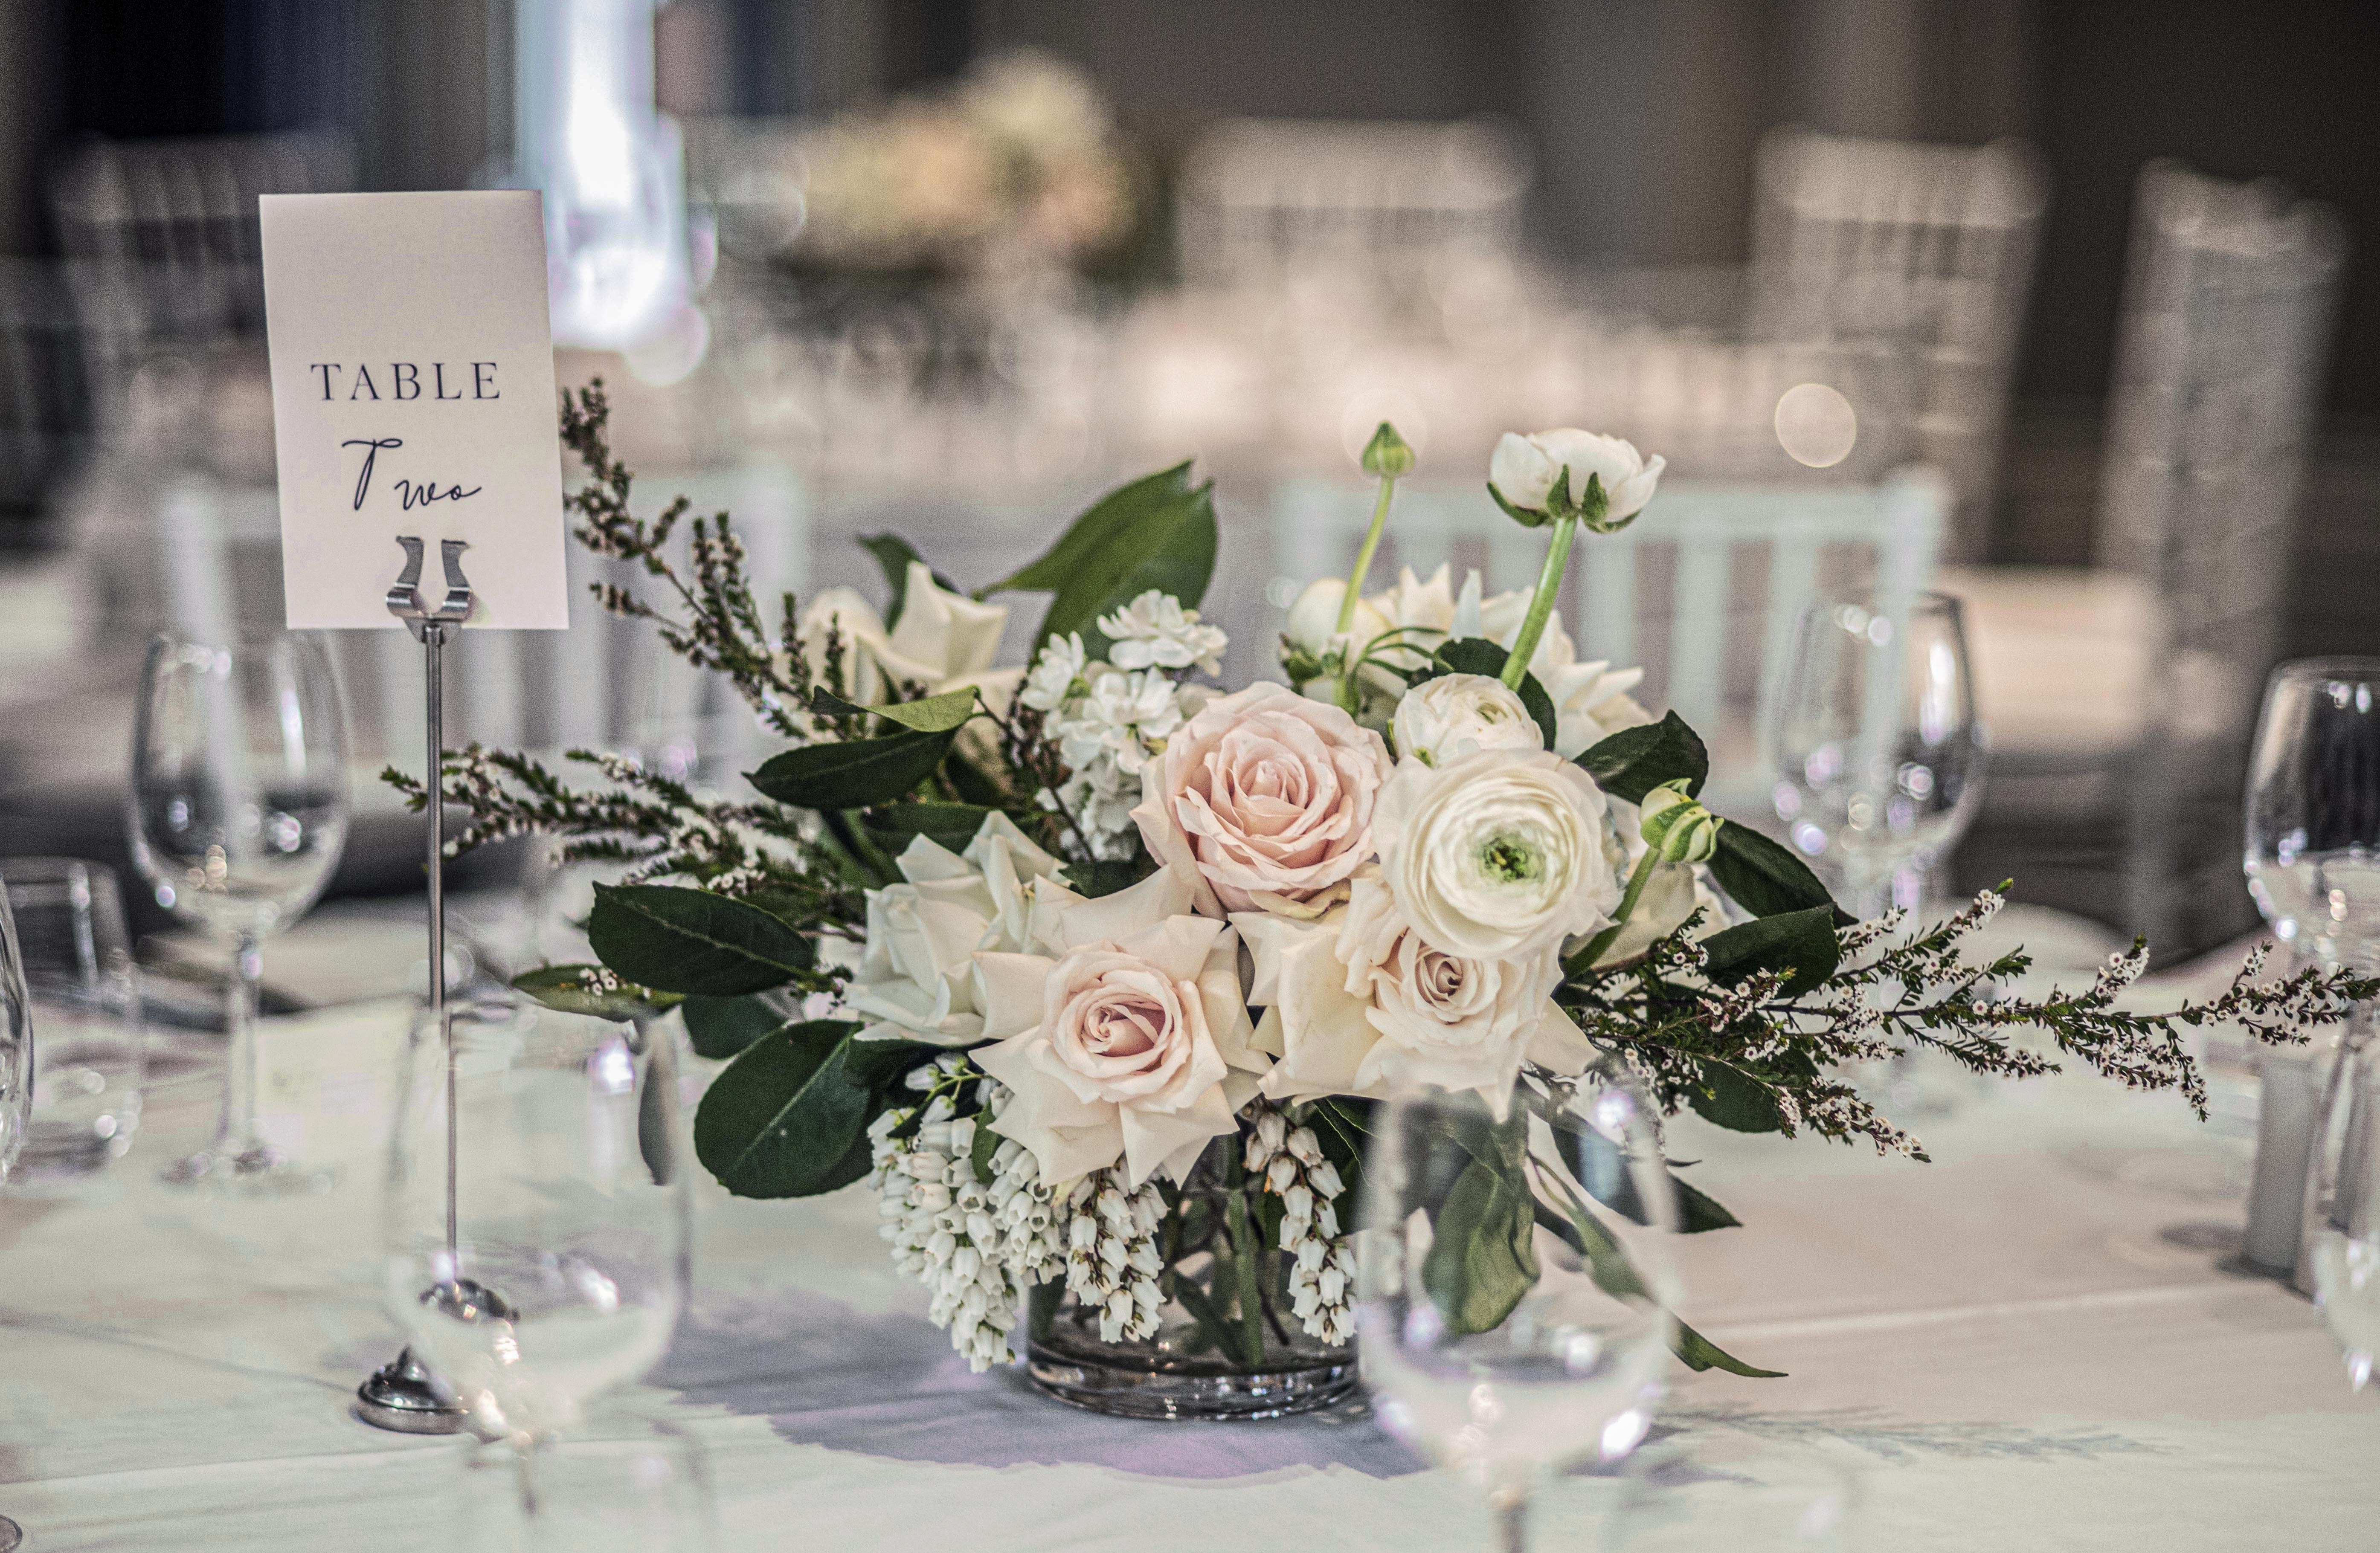 Blush & cream guest table flowers